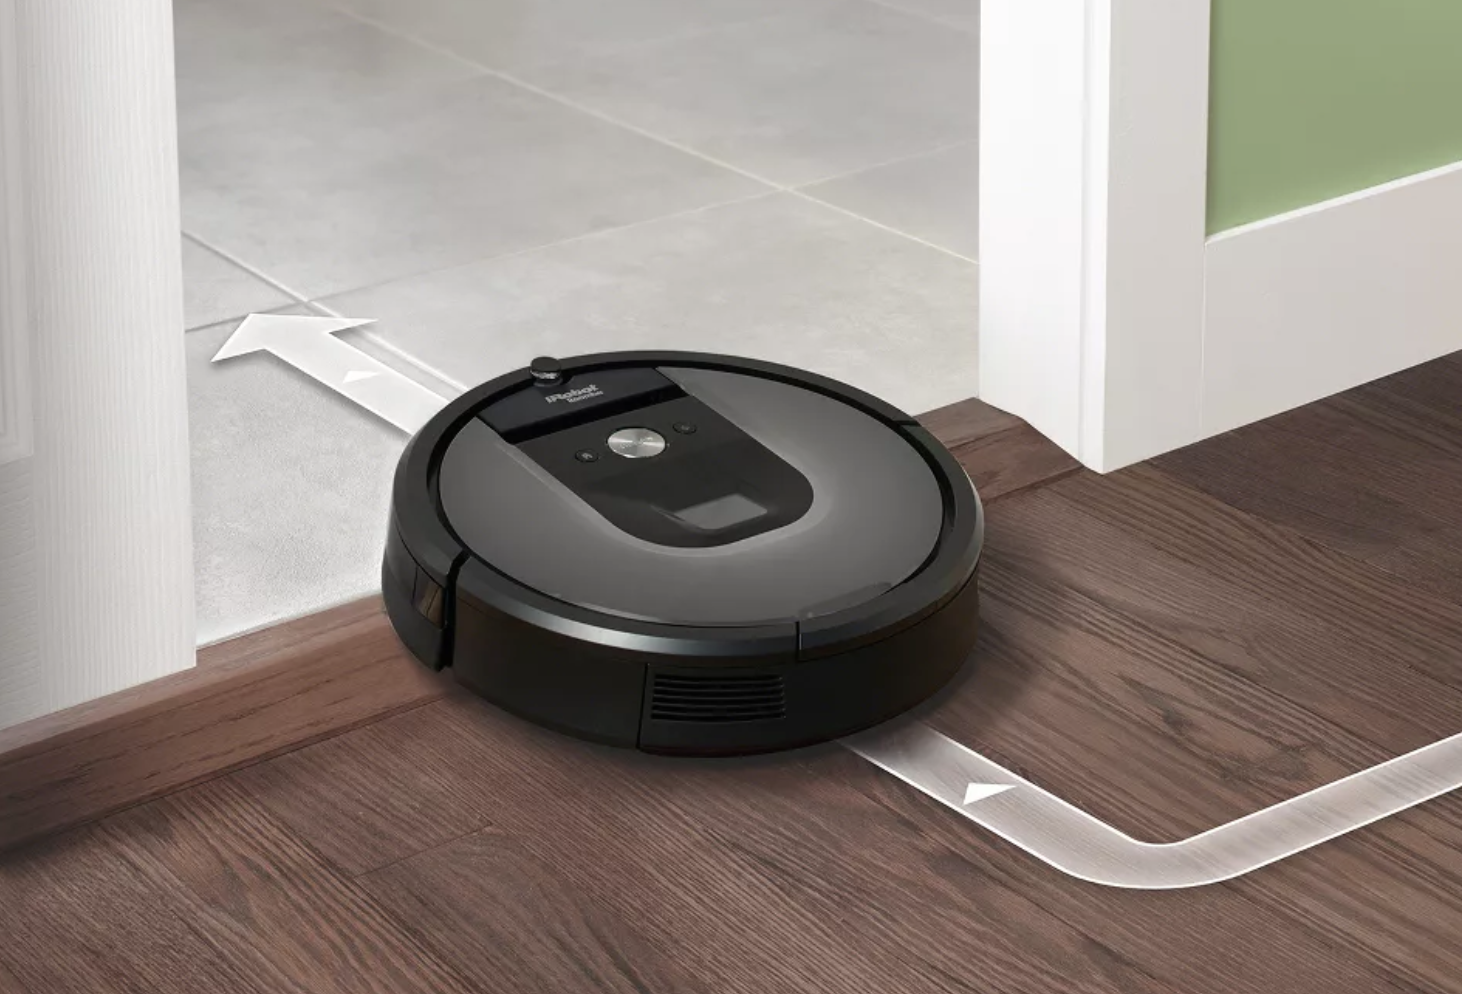 A gray circle-shaped Roomba on a hardwood floor